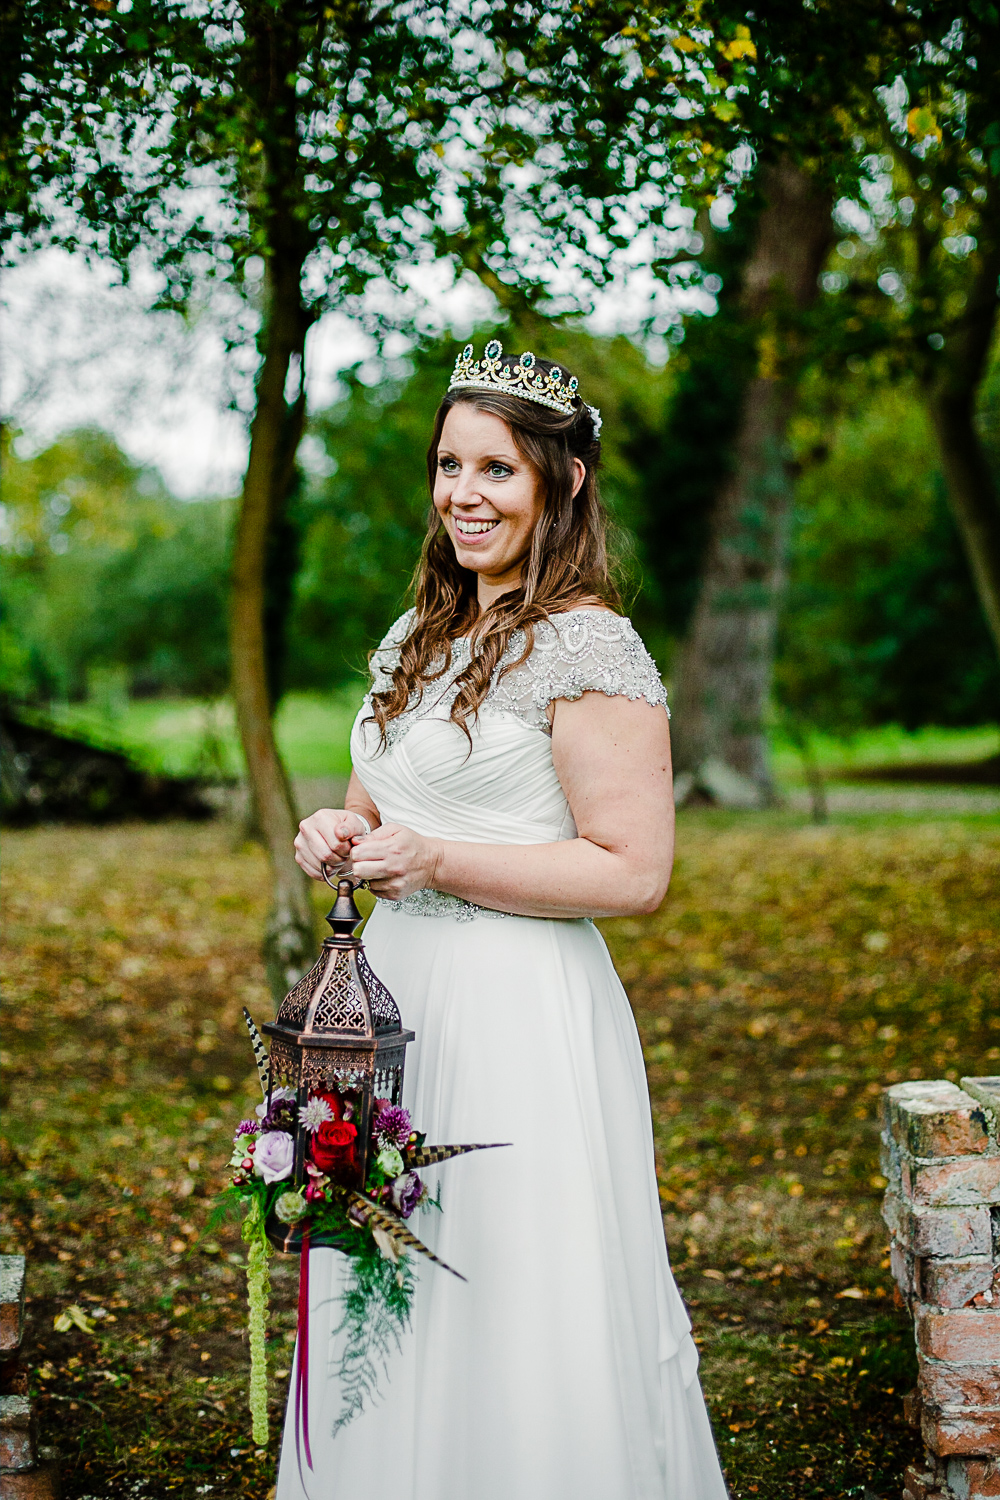 Tudor Barn Belstead Wedding Photographer - Bridal portrait in the gardens - Game of Thrones